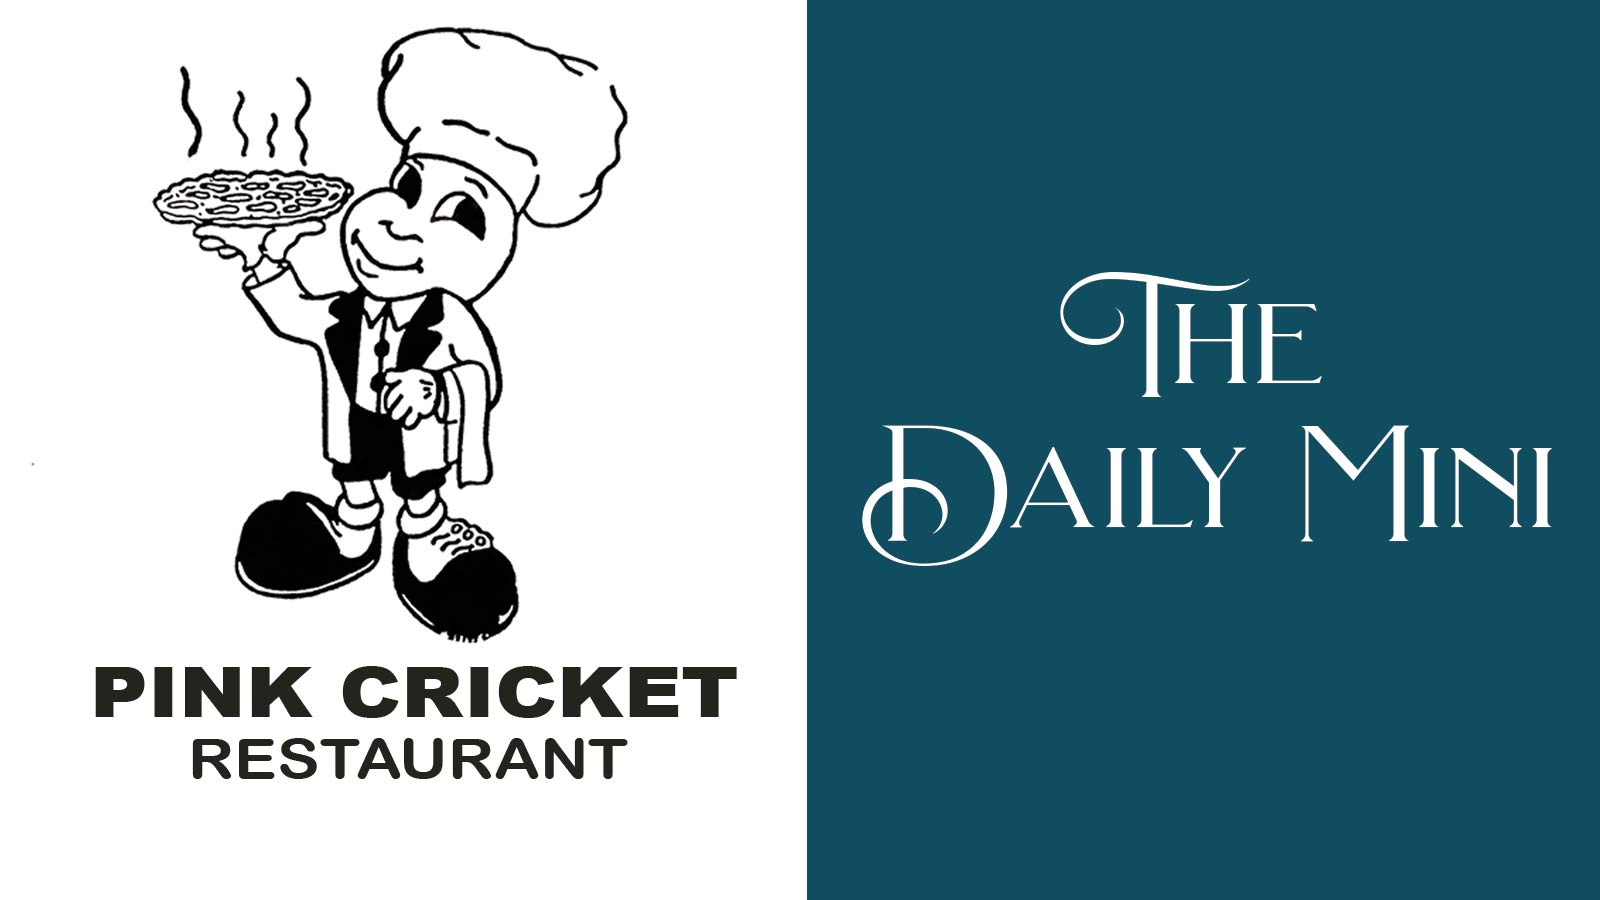 The Daily Mini announcement showing the Pink Cricket Restaurant logo artwork.